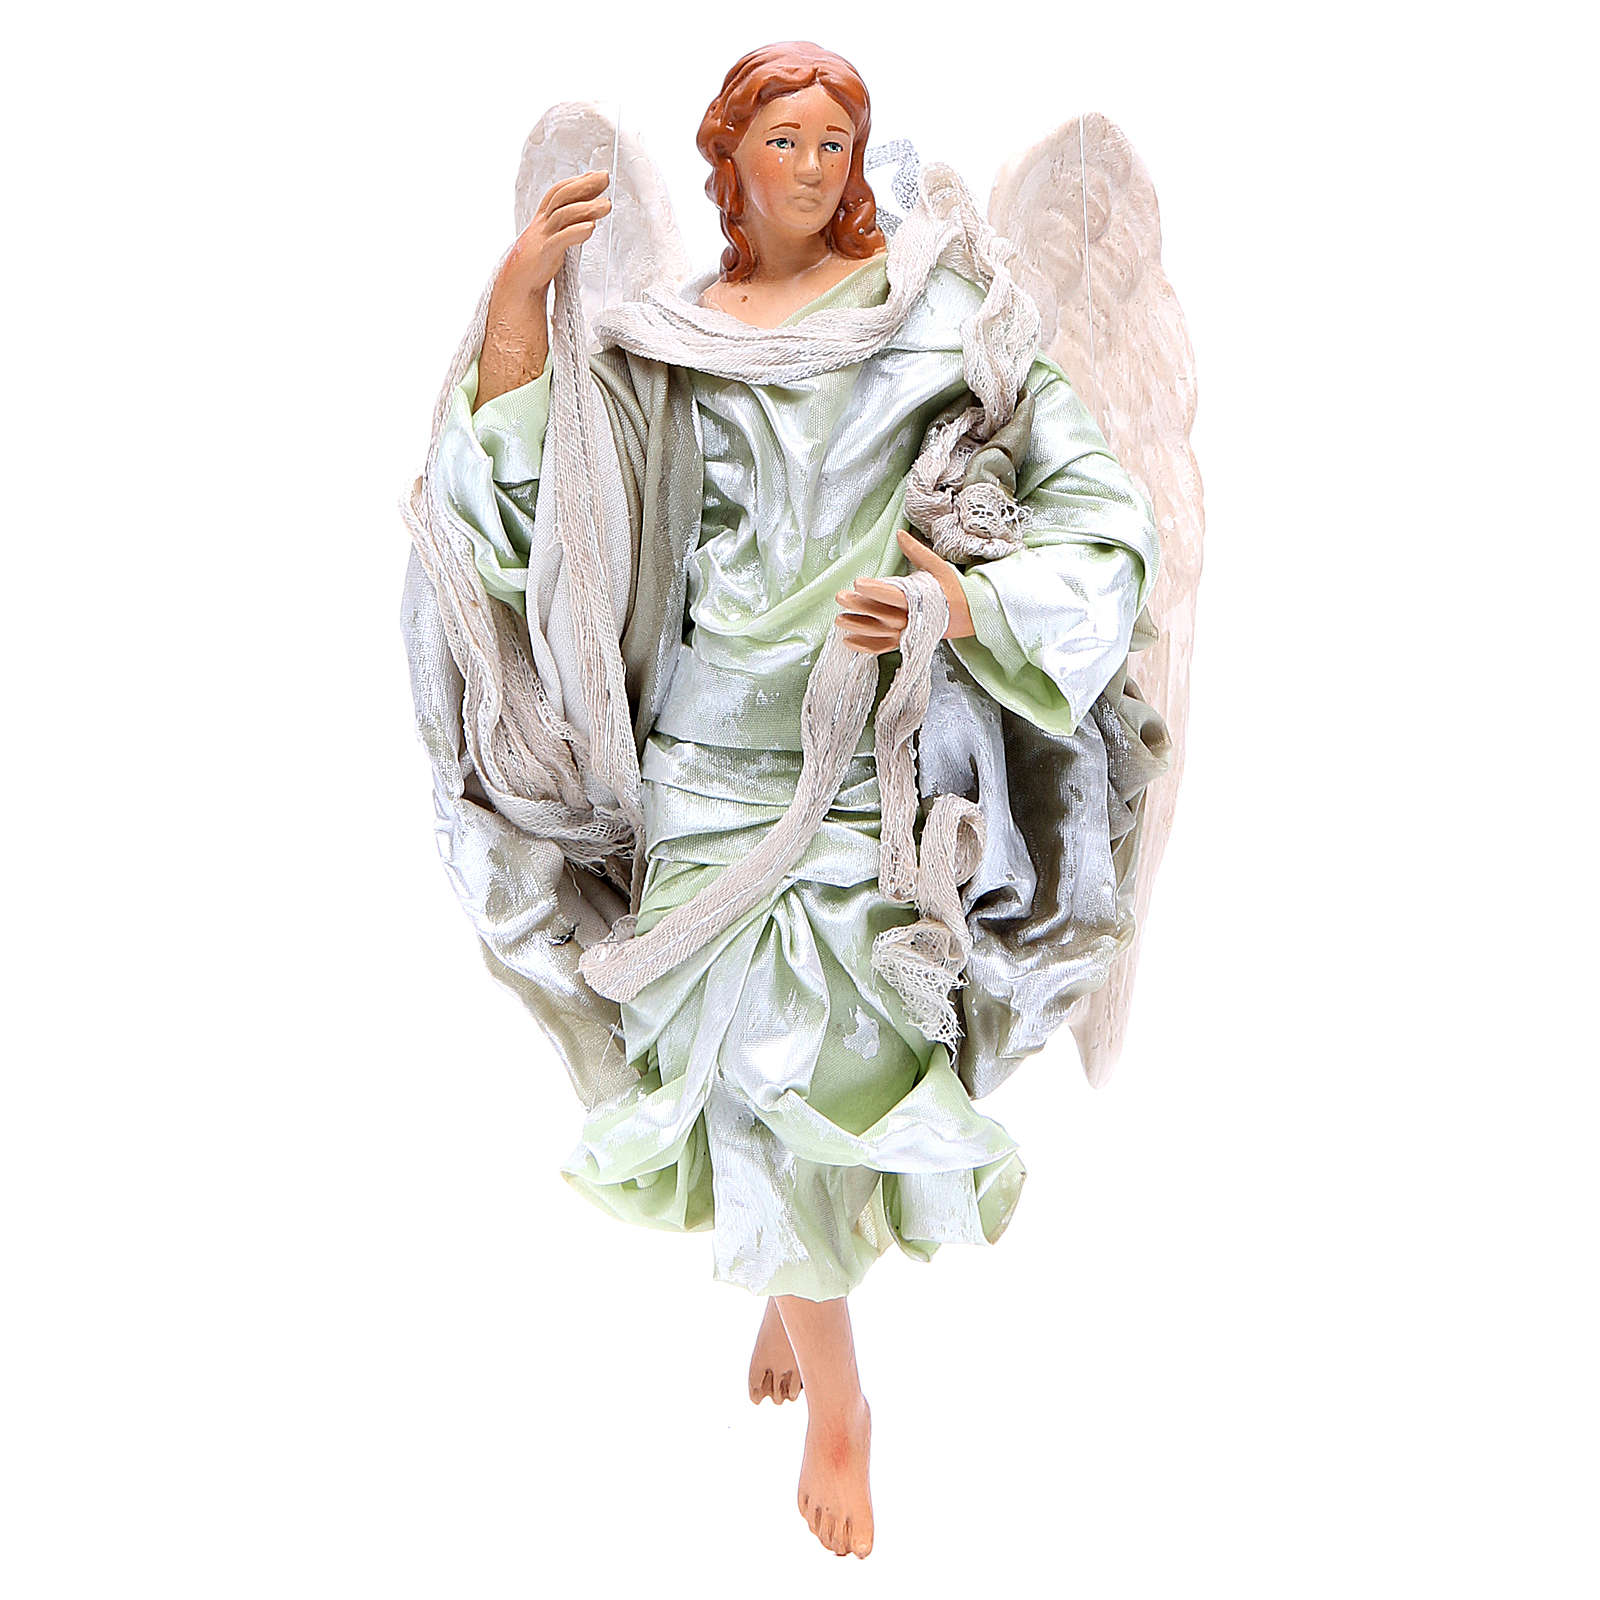 Green angel with curved wings, figurine for Neapolitan Nativity, 18-22cm 4